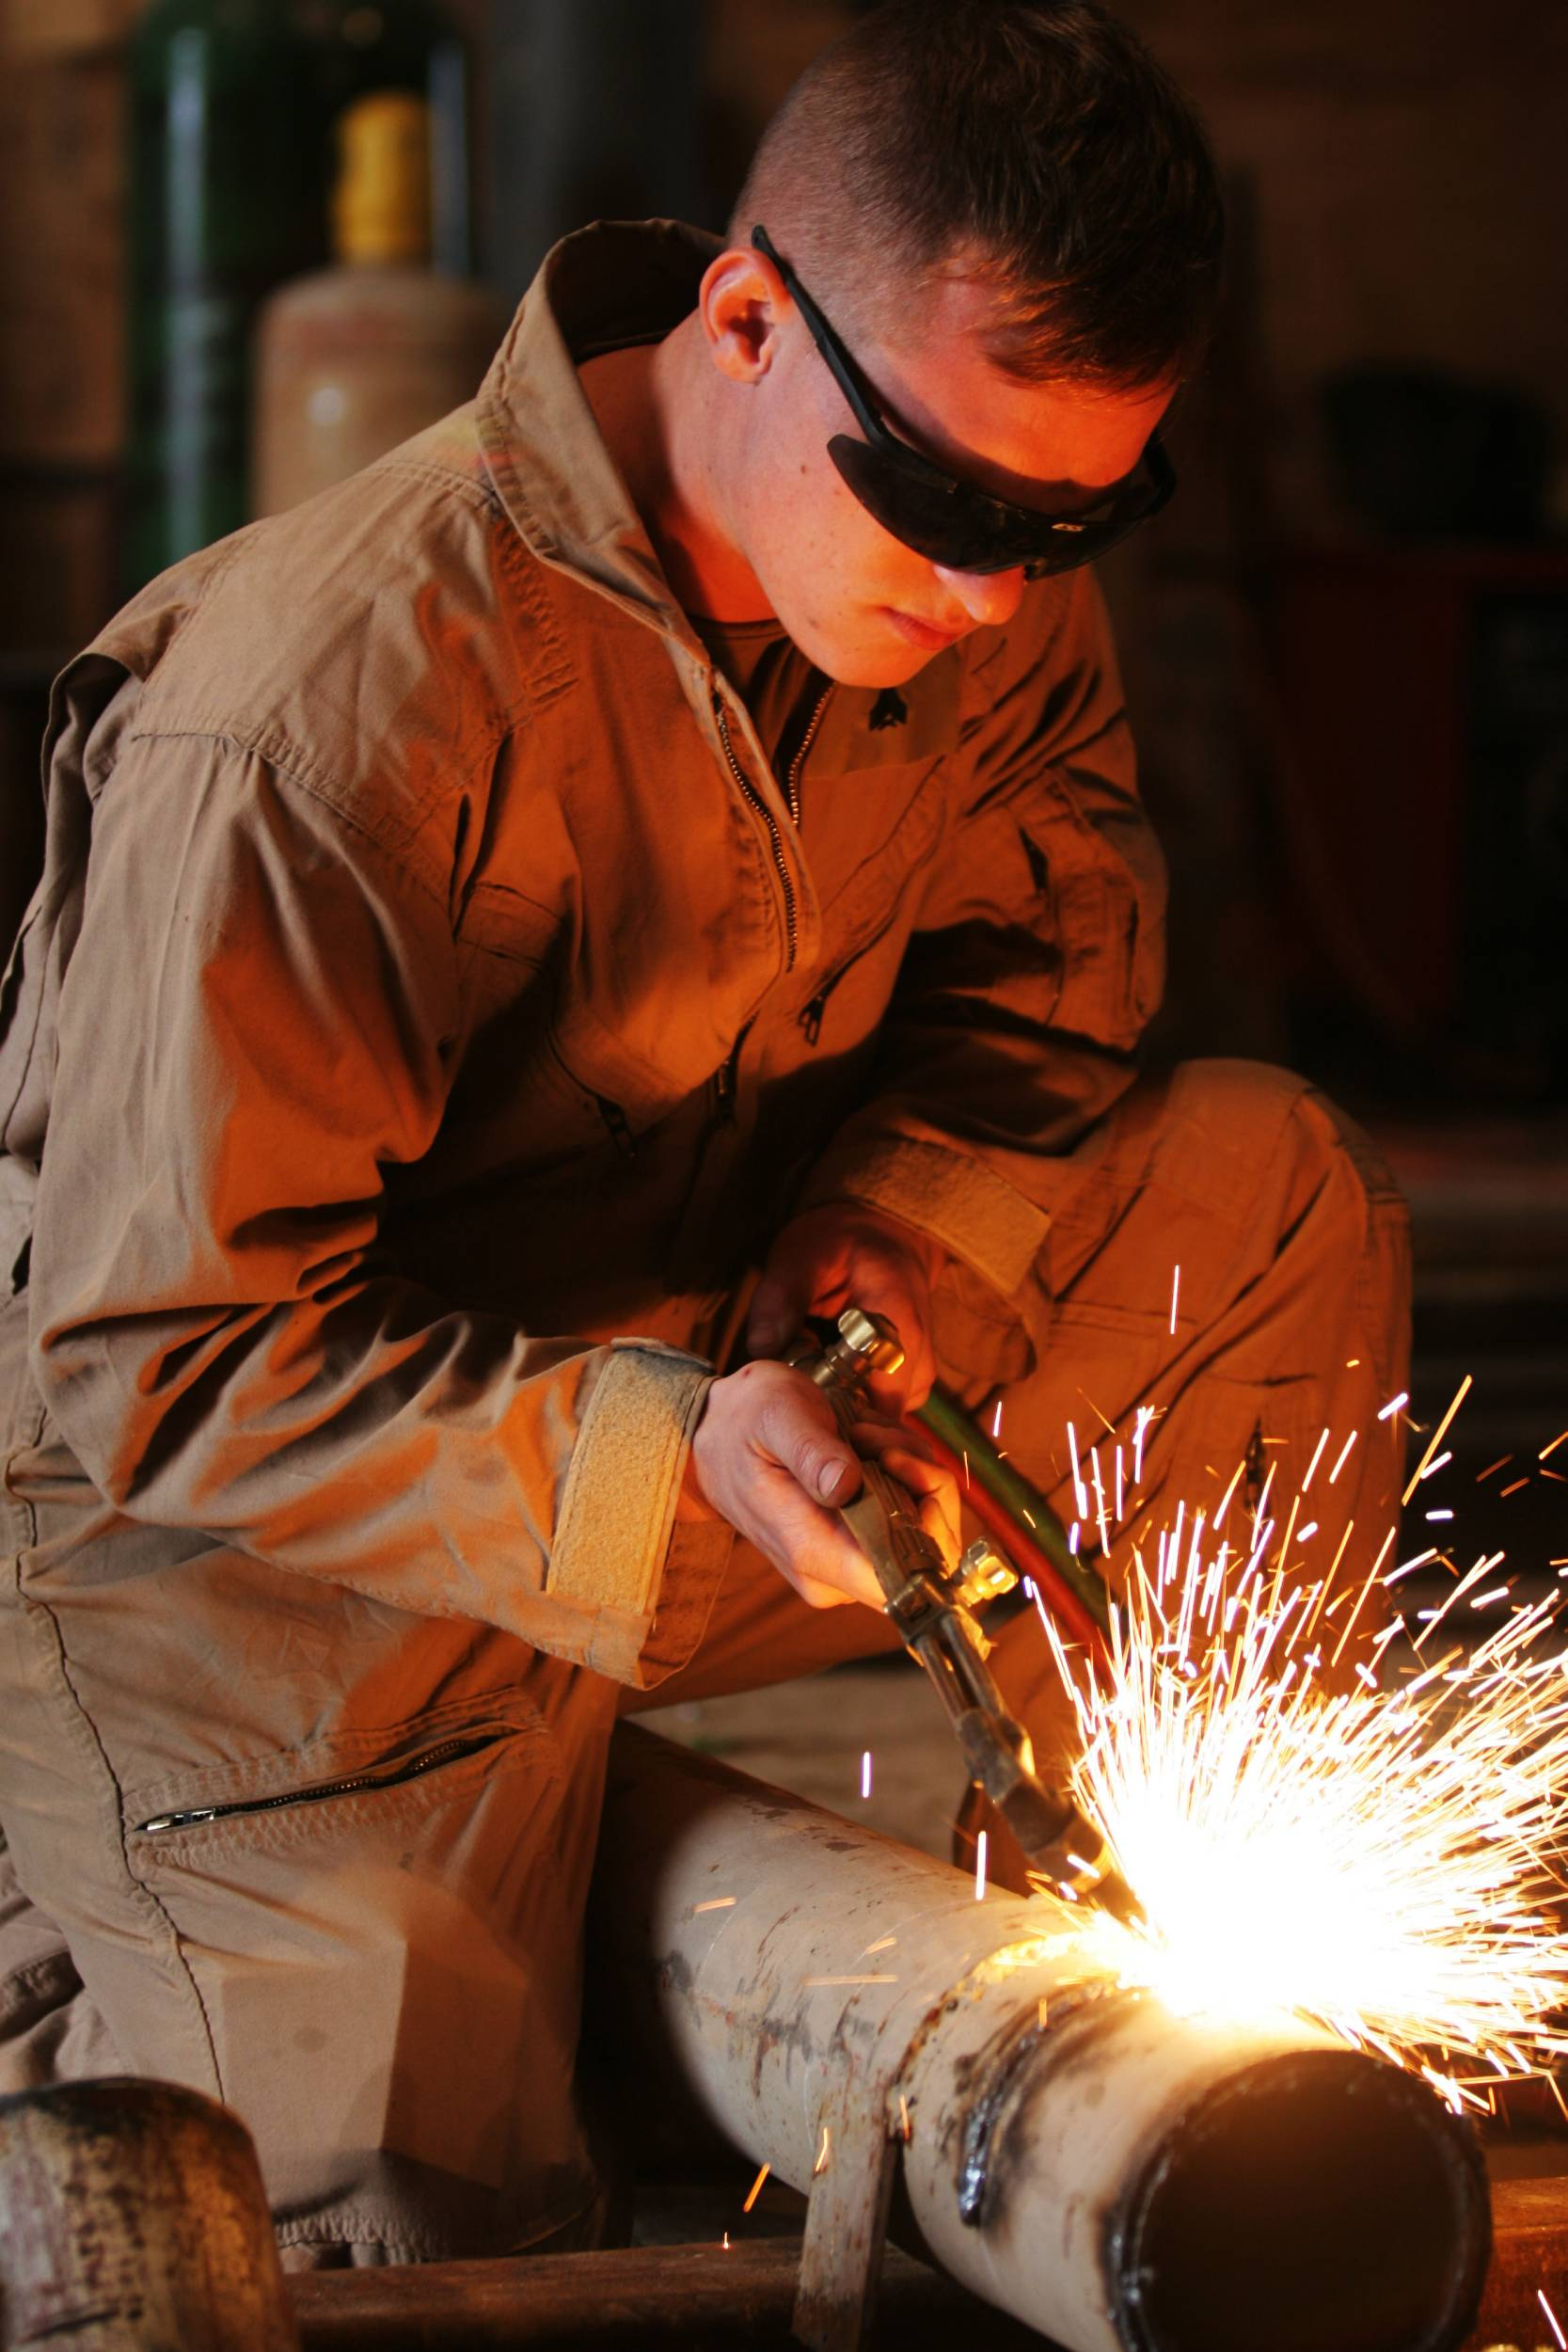 File:Cutting torch.jpg - Wikimedia Commons